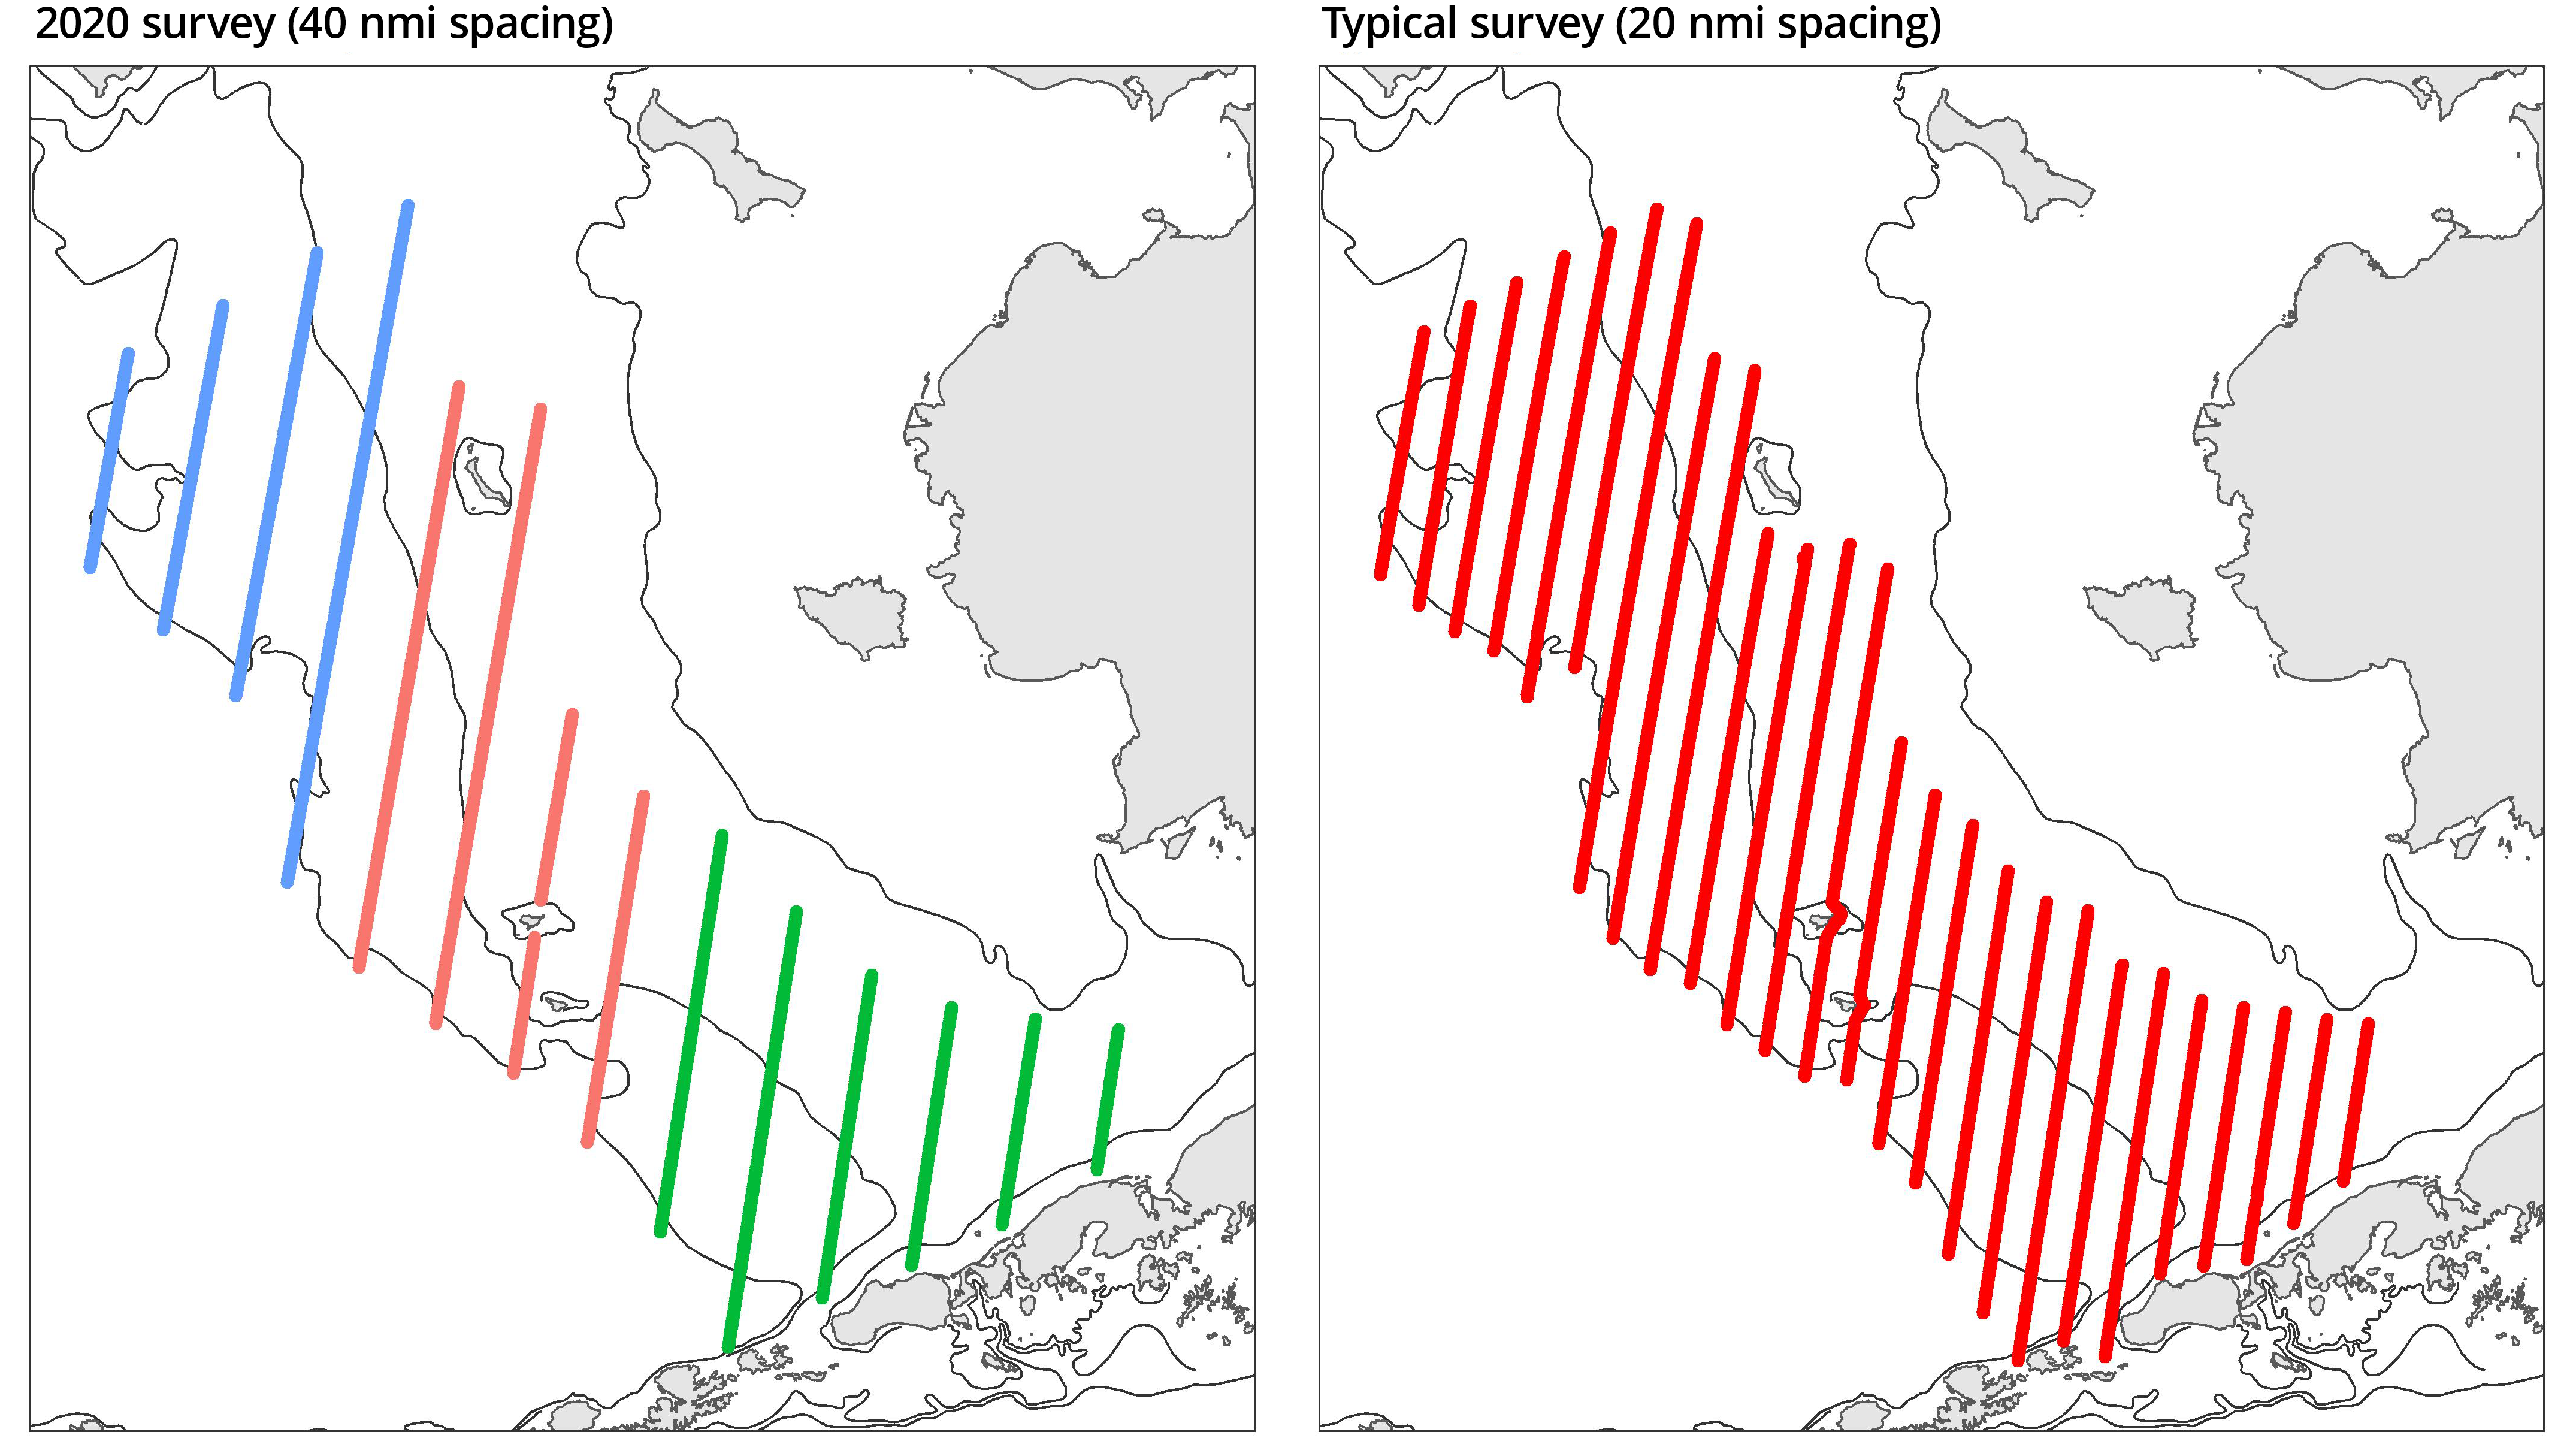 Two maps showing typical and 2020 survey transects in the Bering Sea.